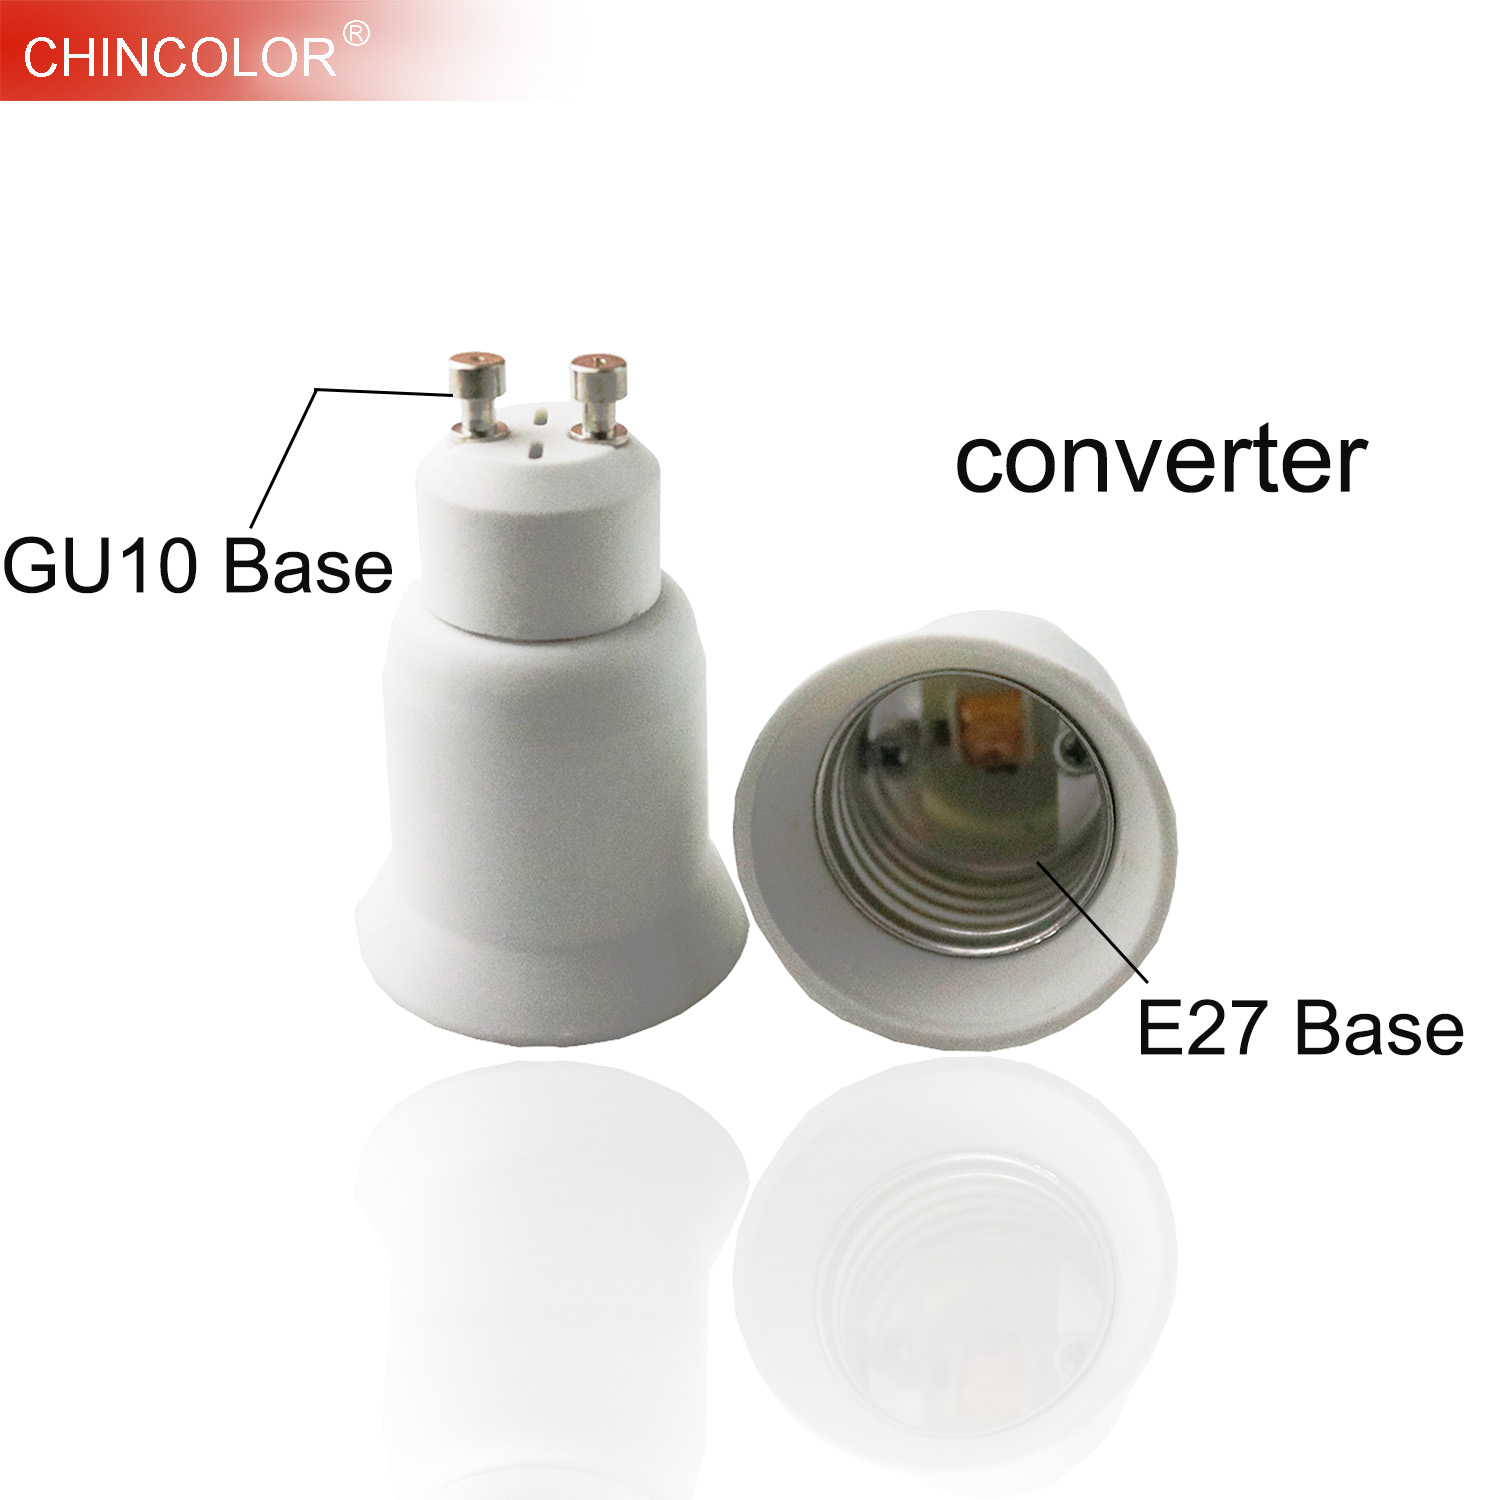 Led Lamp Base Converter GU10 To E27 Screw  Light Bulb Holder Adapter Socket Plug Extender PBT Plastic Safty Fast Ship JQ